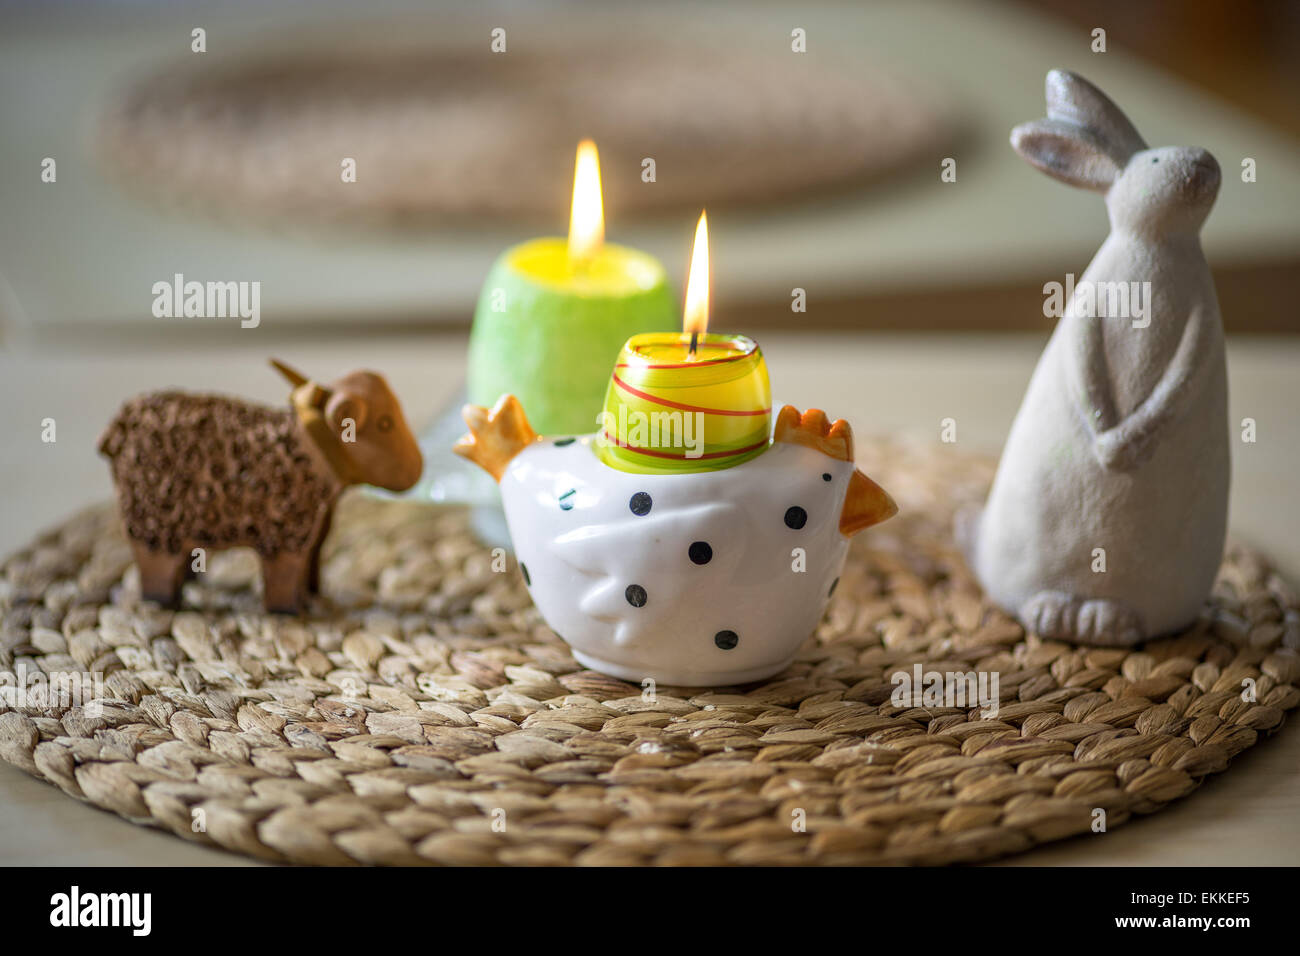 Easter Lamb Bunny Chicken Figurines And Burning Candles Photo Gallery